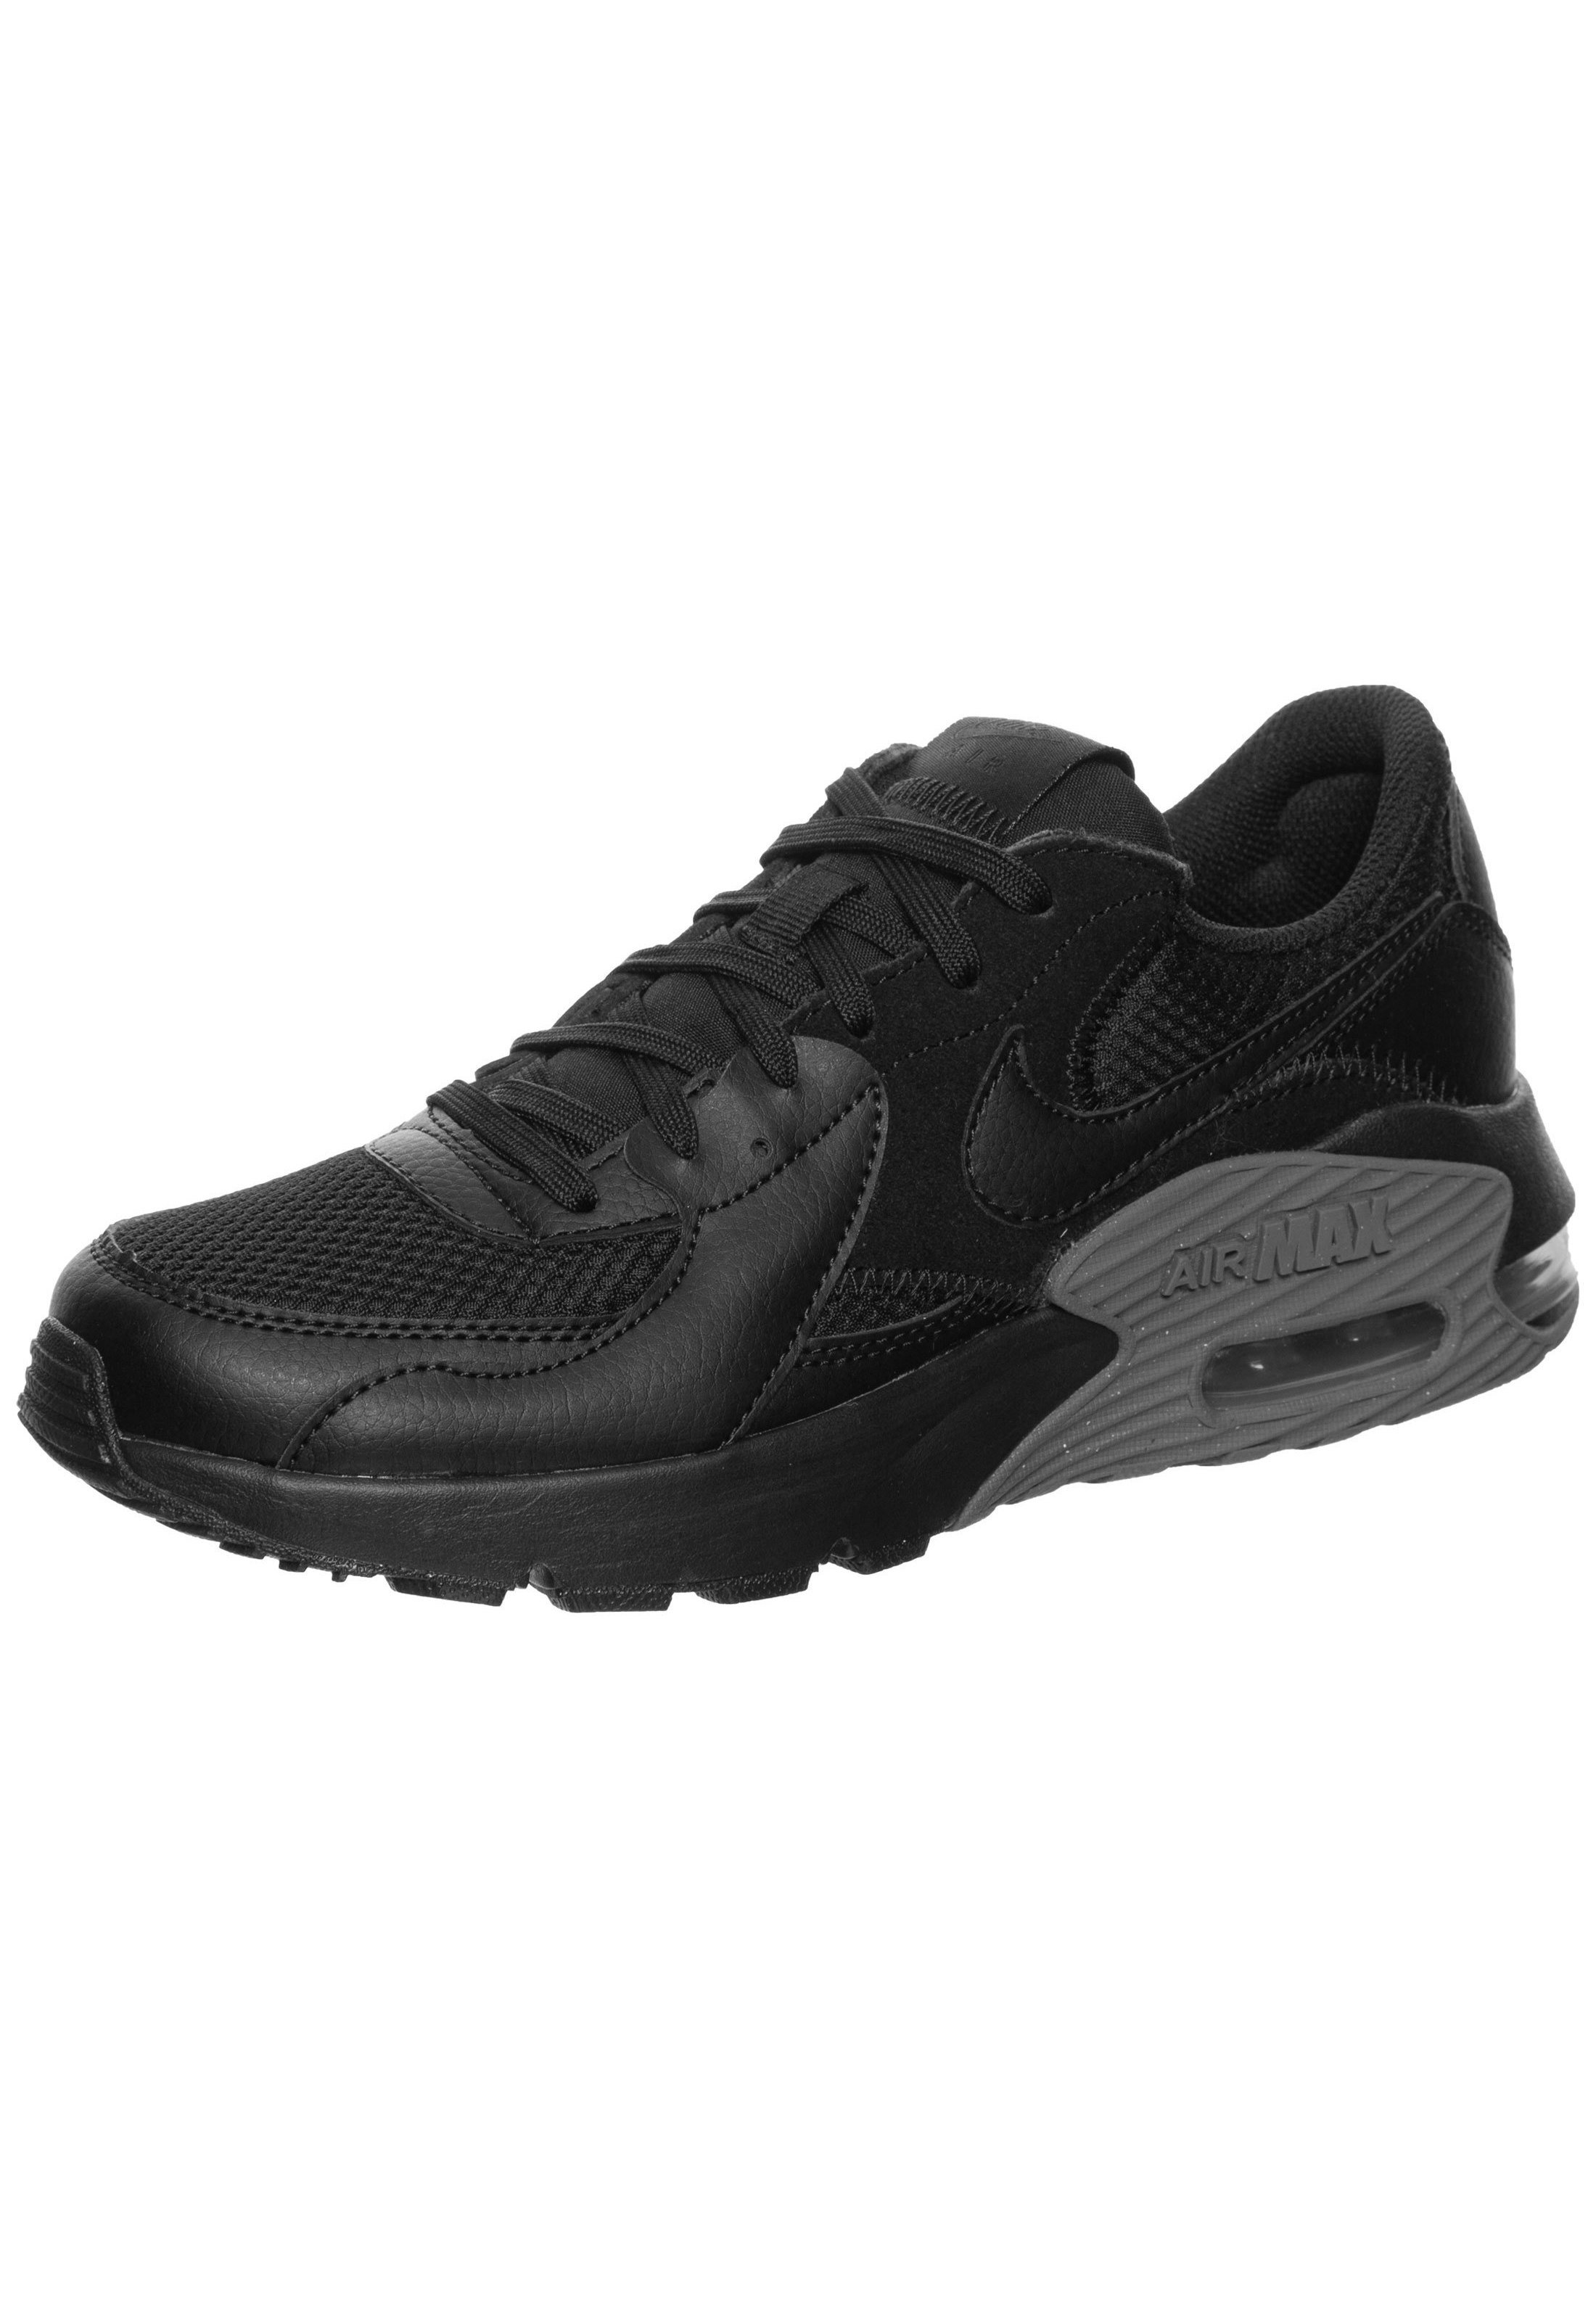 Nike Sportswear Sneaker low - black/dark grey 8eJ1v4